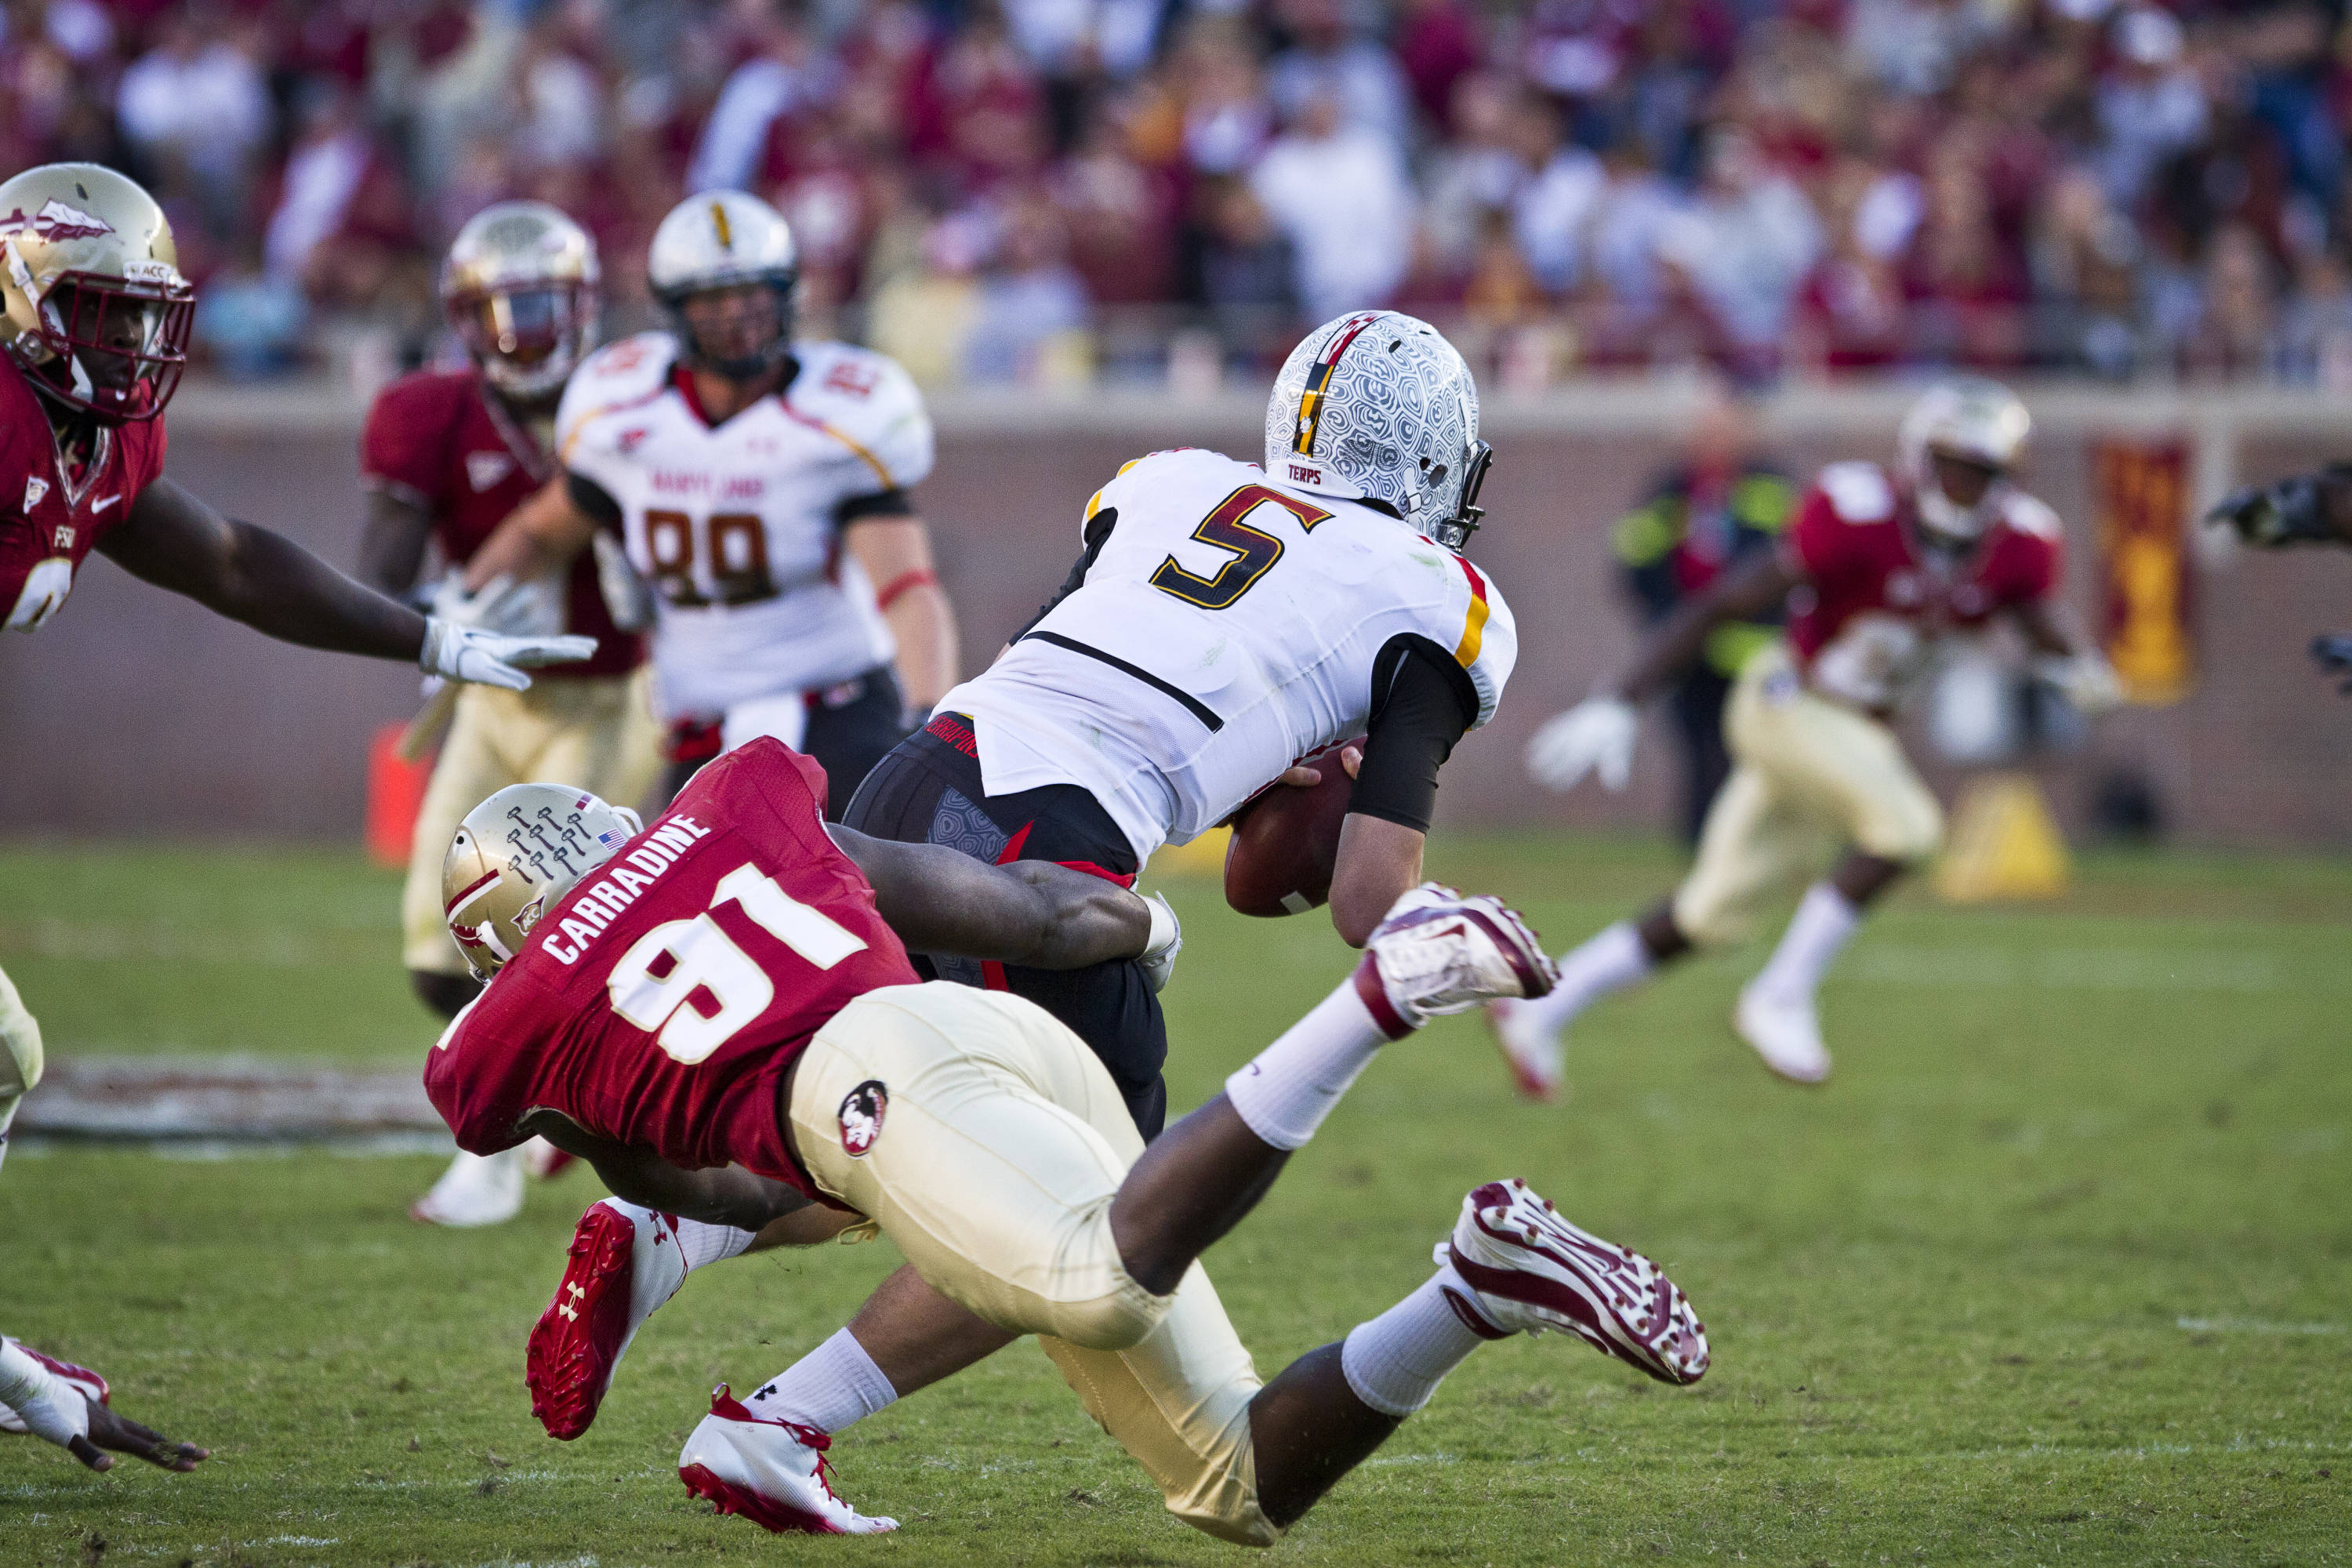 Cornellius Carradine (91) sacks the Maryland quarterback during the football game against Maryland in Tallahassee, Florida on October 22, 2011.